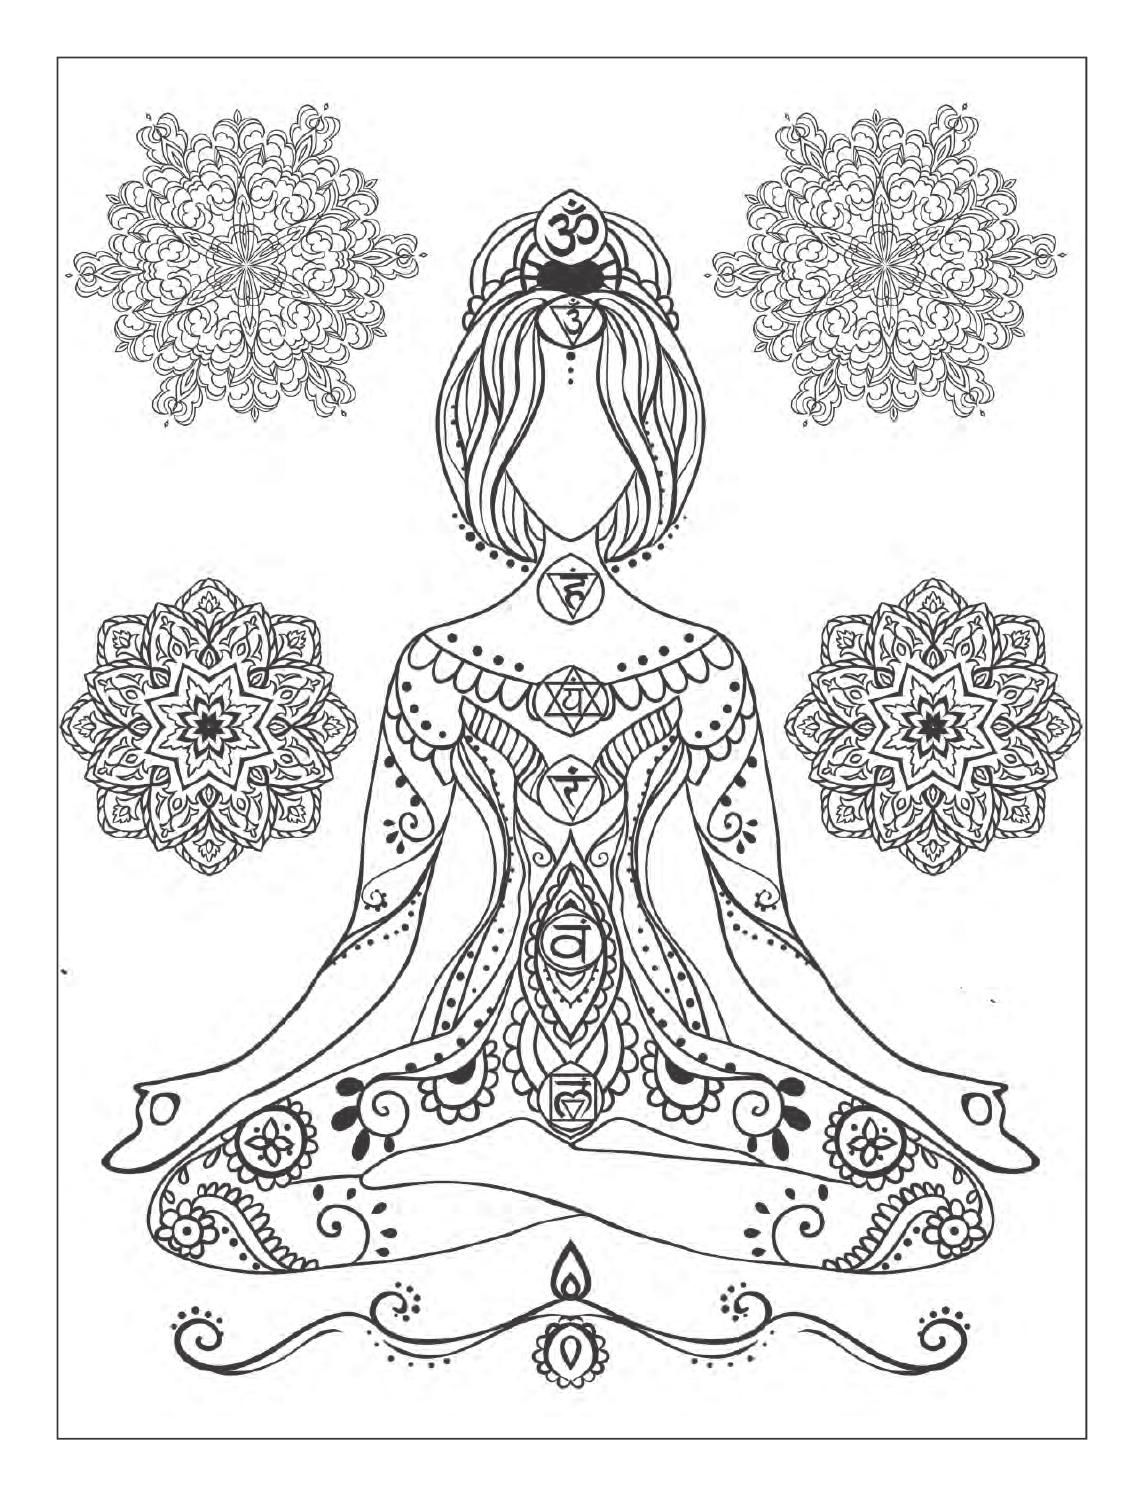 Yoga And Meditation Coloring Book For Adults With Yoga Poses And Mandalas Designs Coloring Books Coloring Books Mandala Coloring